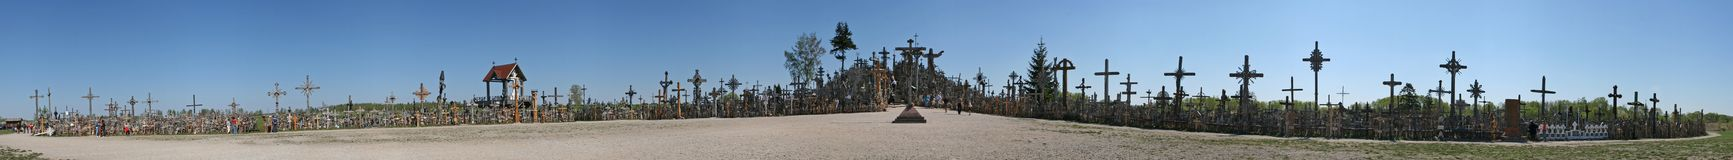 Hill of crosses panorama Royalty Free Stock Photography